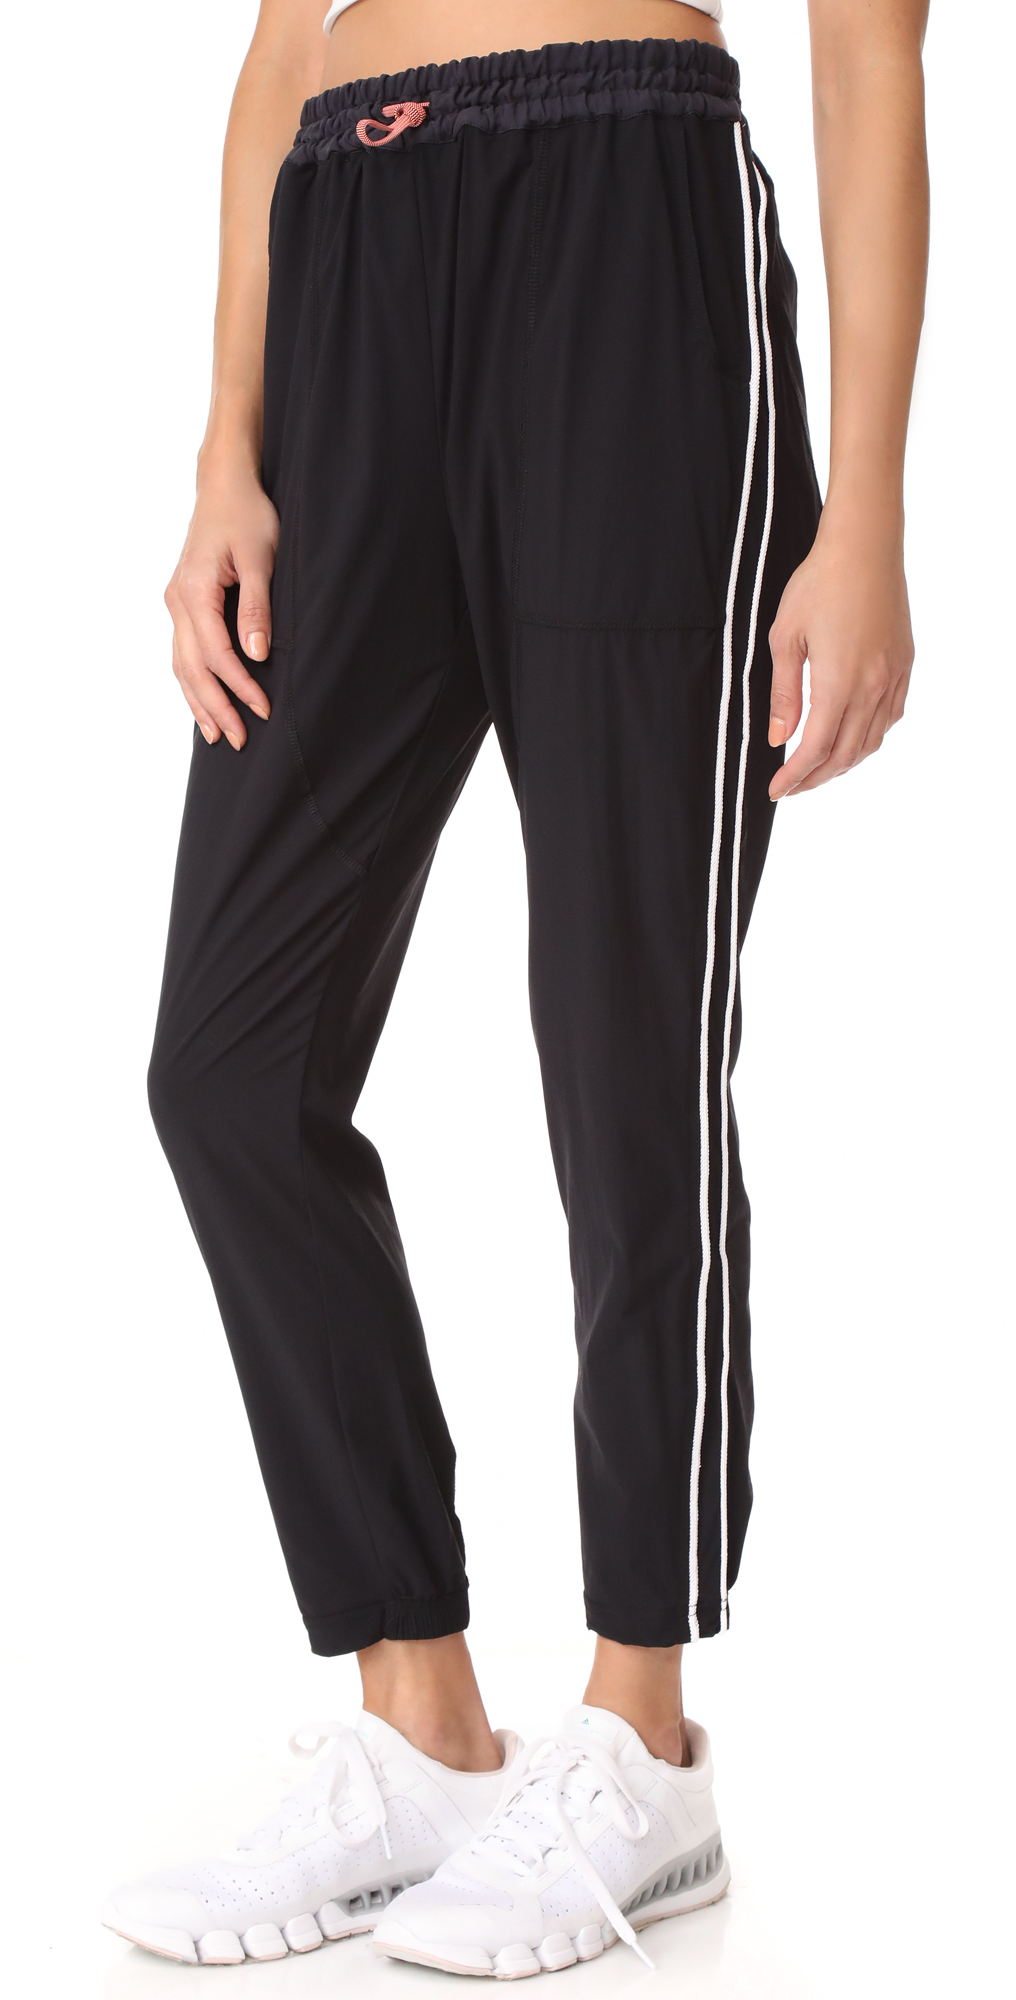 Movement Cardio Jogger Pants Free People